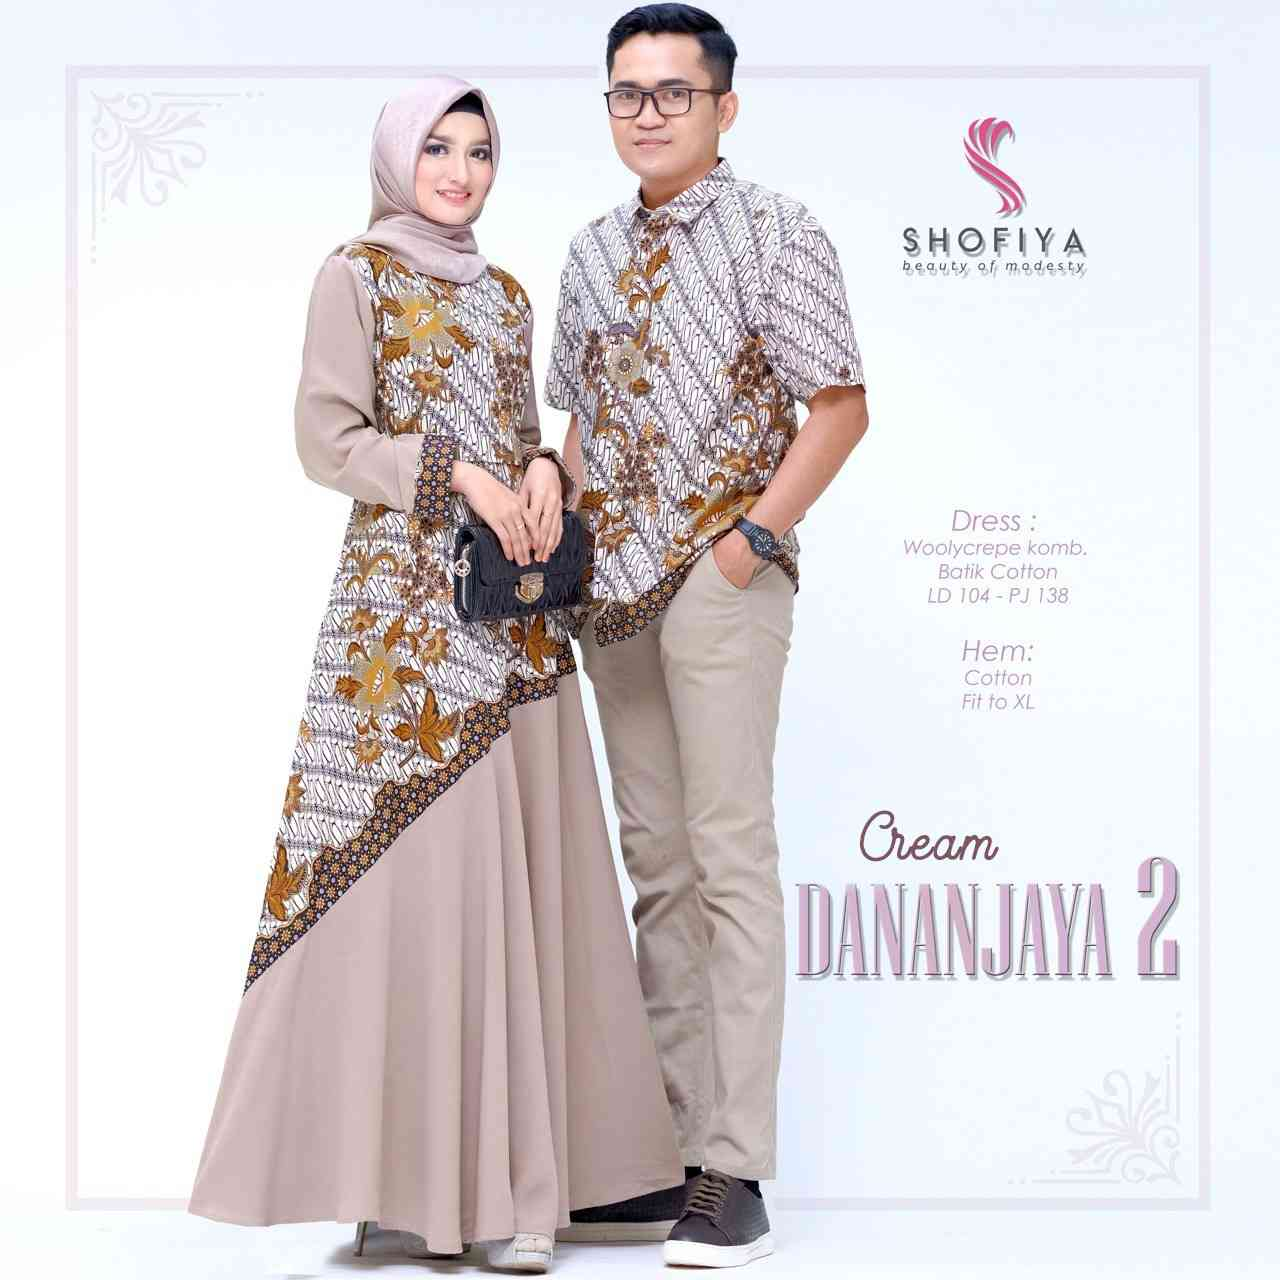 Baju couple batik danajaya 2 cream